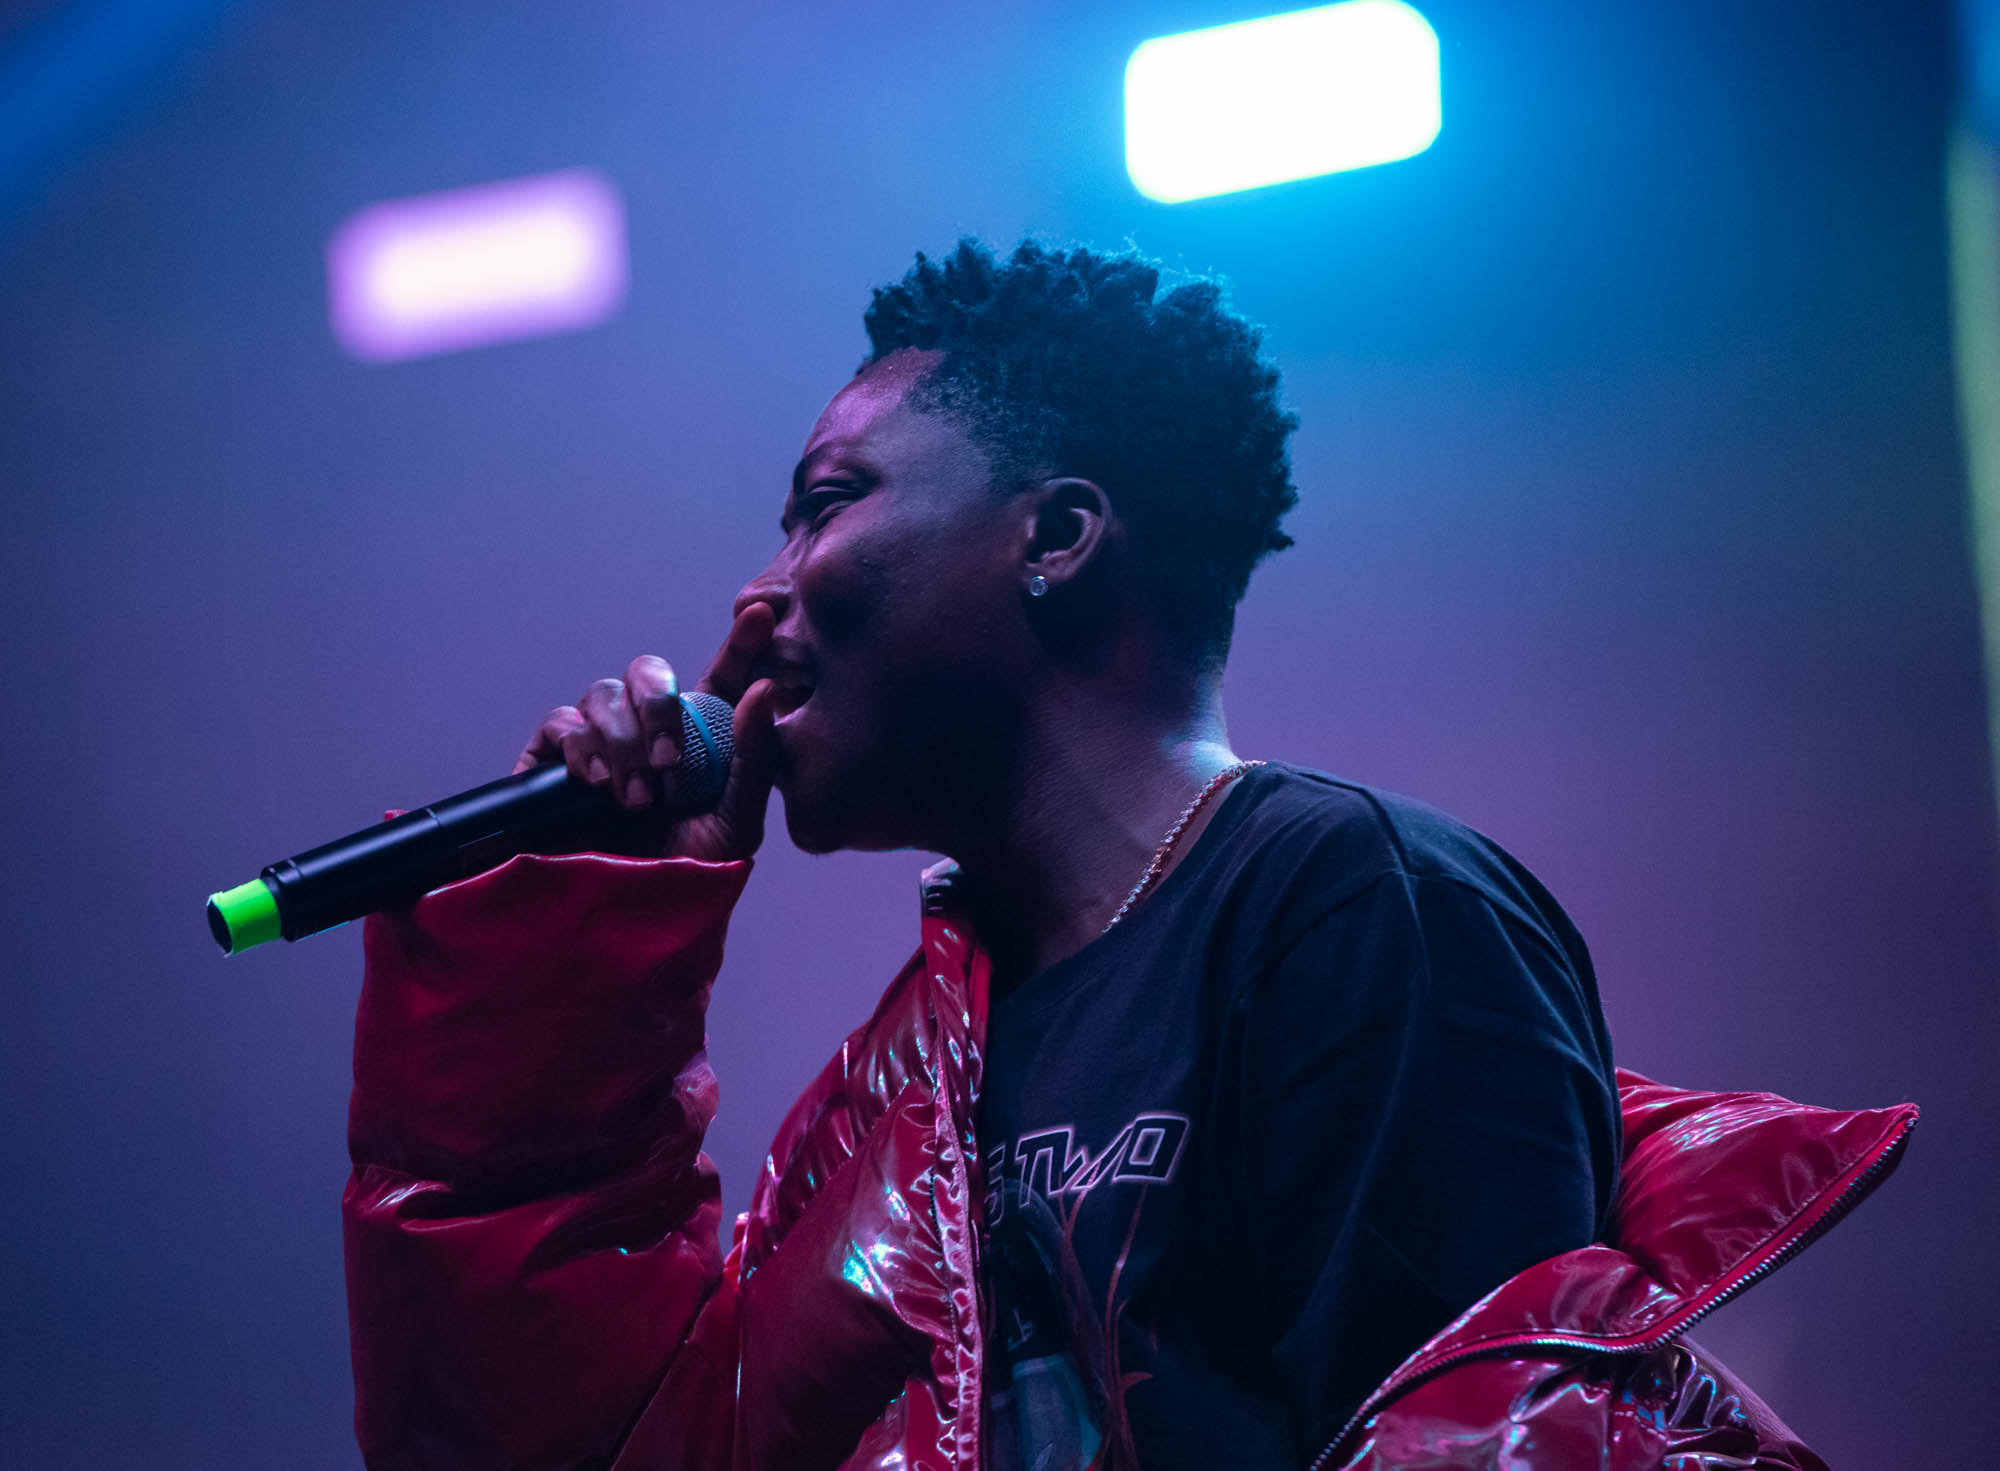 London, United Kingdom. 19th October 2019.  Reekadobanks performing live at starboy fest at The 02 Arena. Photographed by Michael Tubes